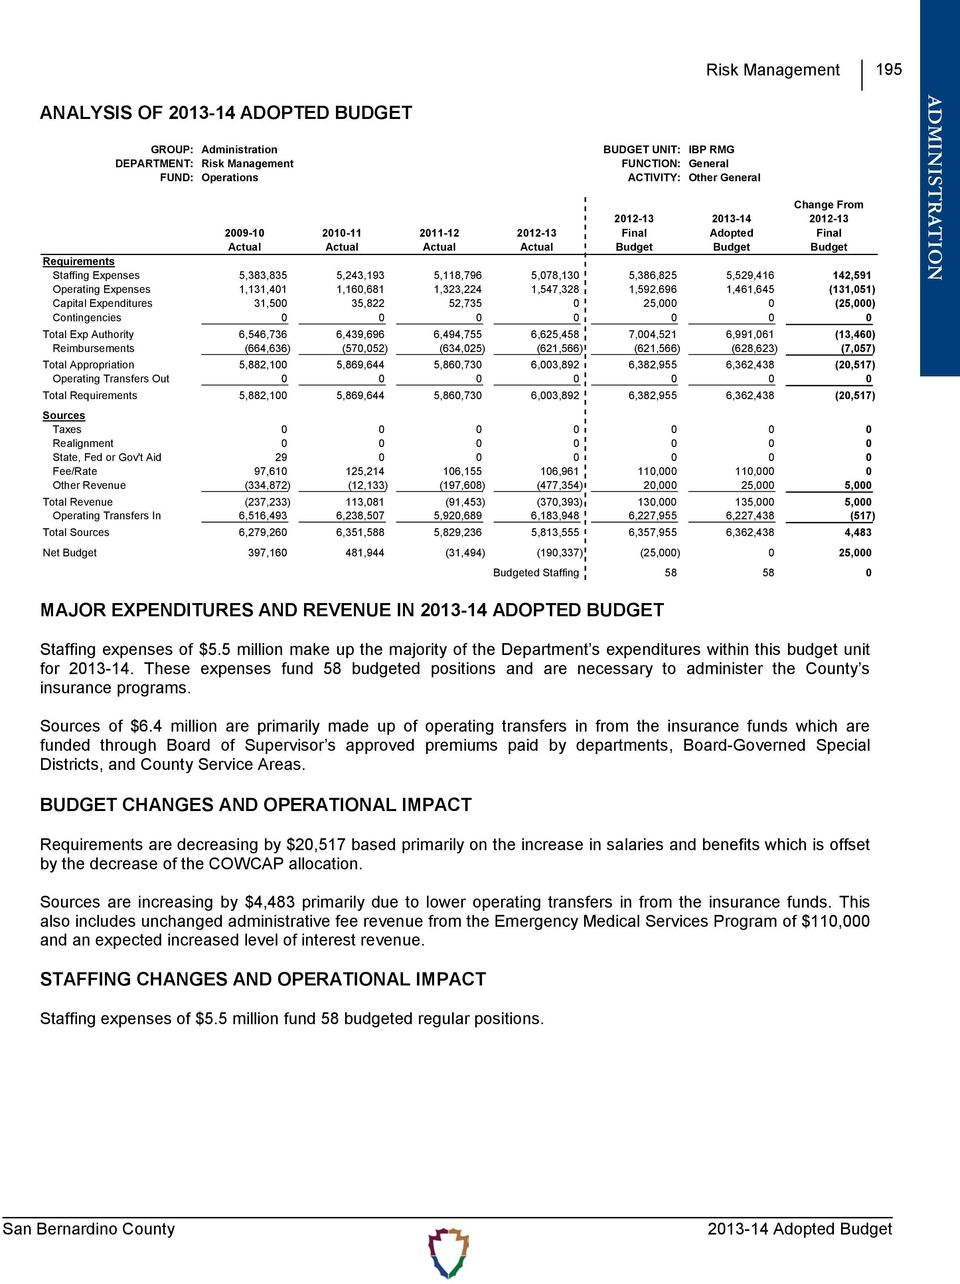 (131,051) Capital Expenditures 31,500 35,822 52,735 0 25,000 0 (25,000) Contingencies 0 0 0 0 0 0 0 Total Exp Authority 6,546,736 6,439,696 6,494,755 6,625,458 7,004,521 6,991,061 (13,460)